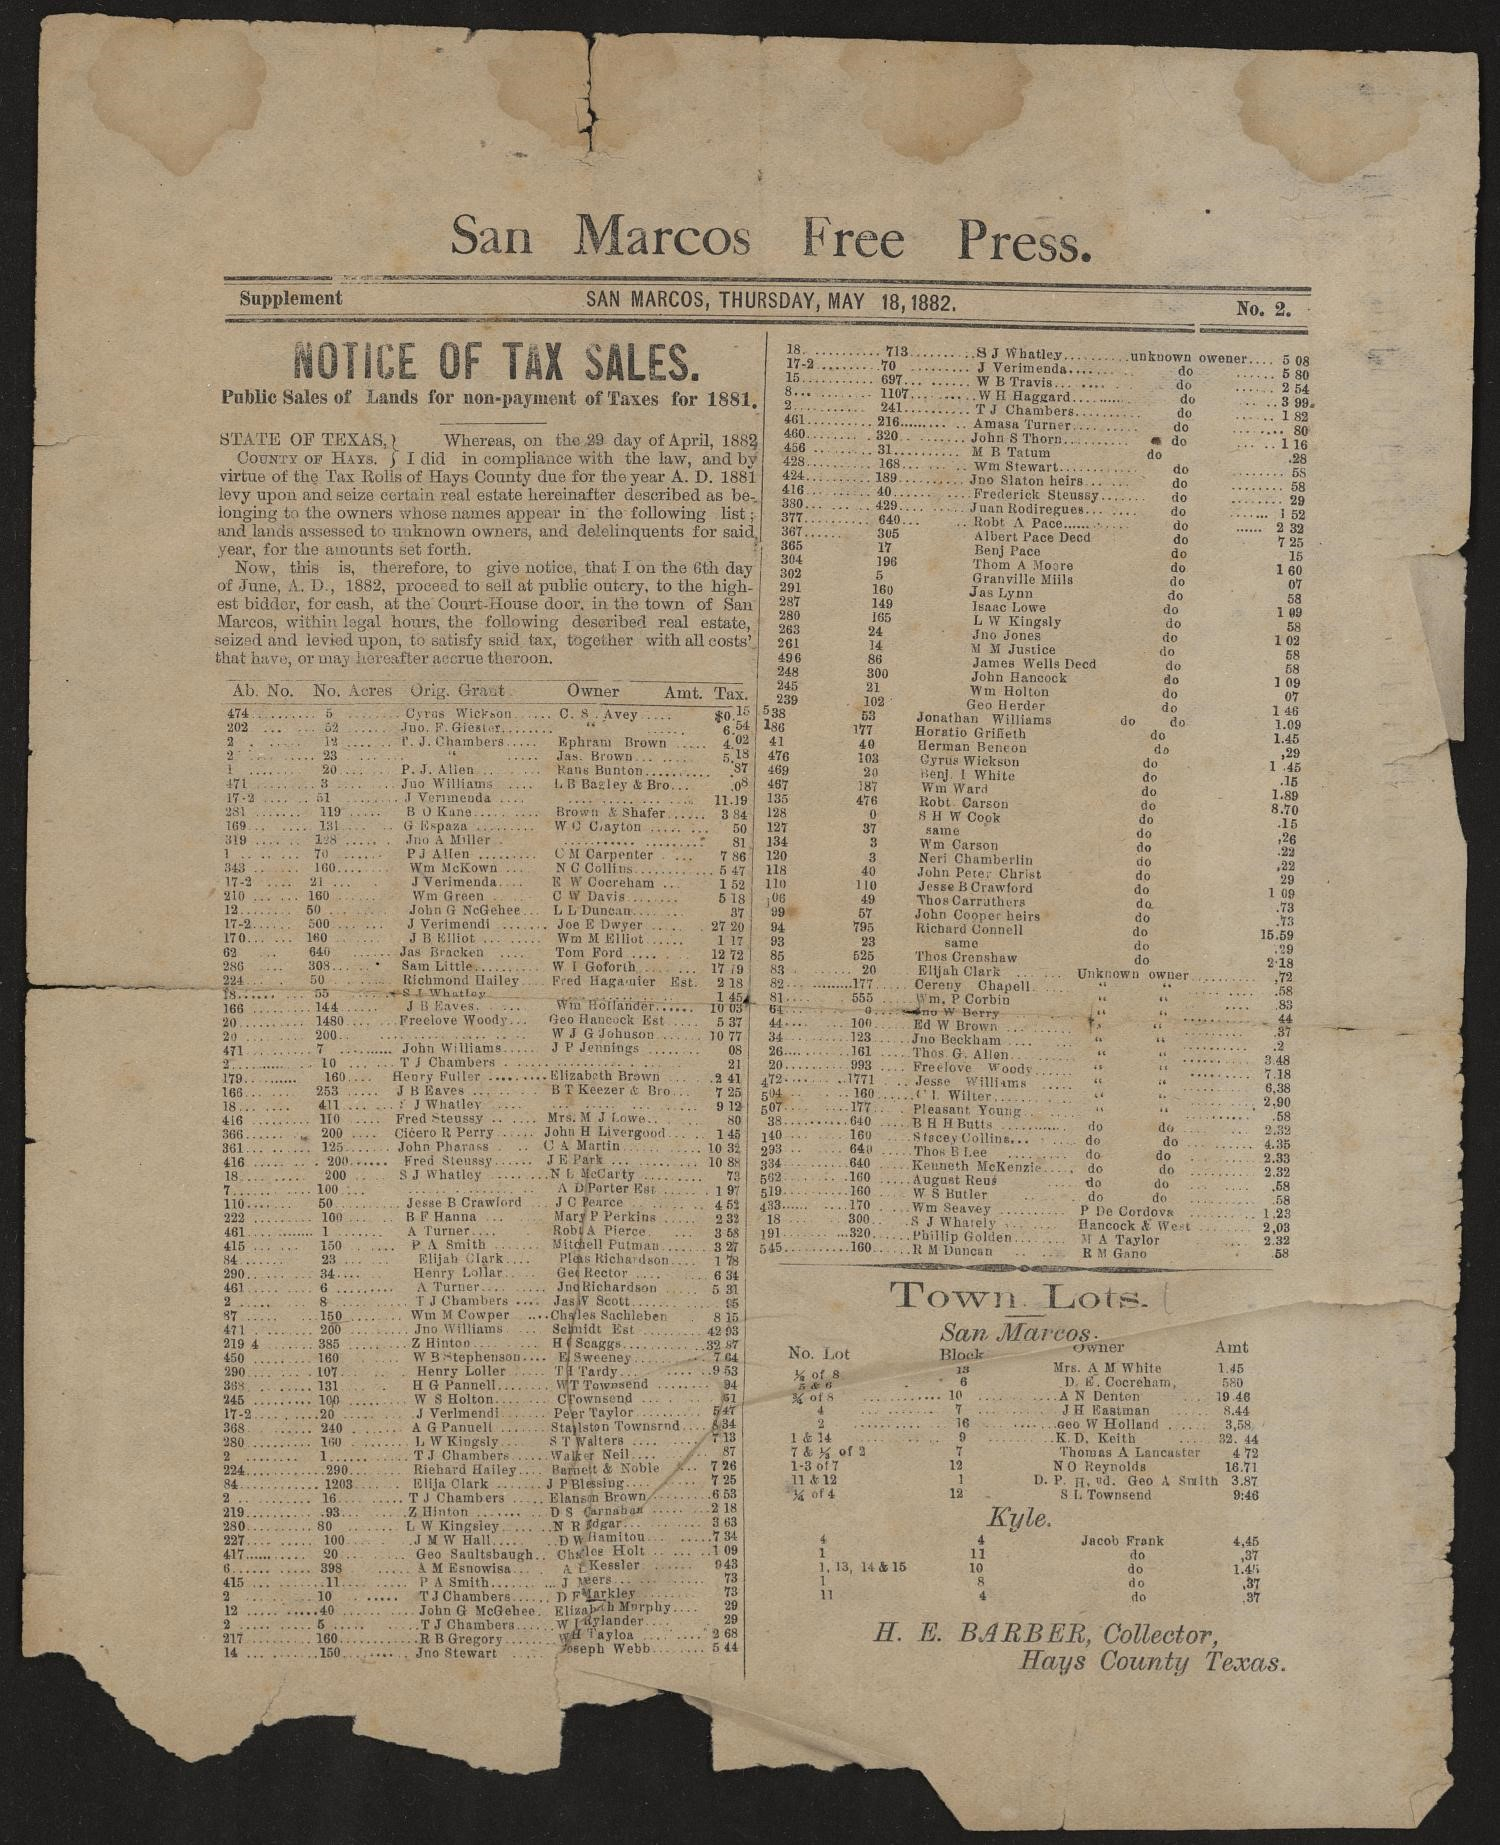 Public Sales of Lands for non-payment of Taxes for 1881